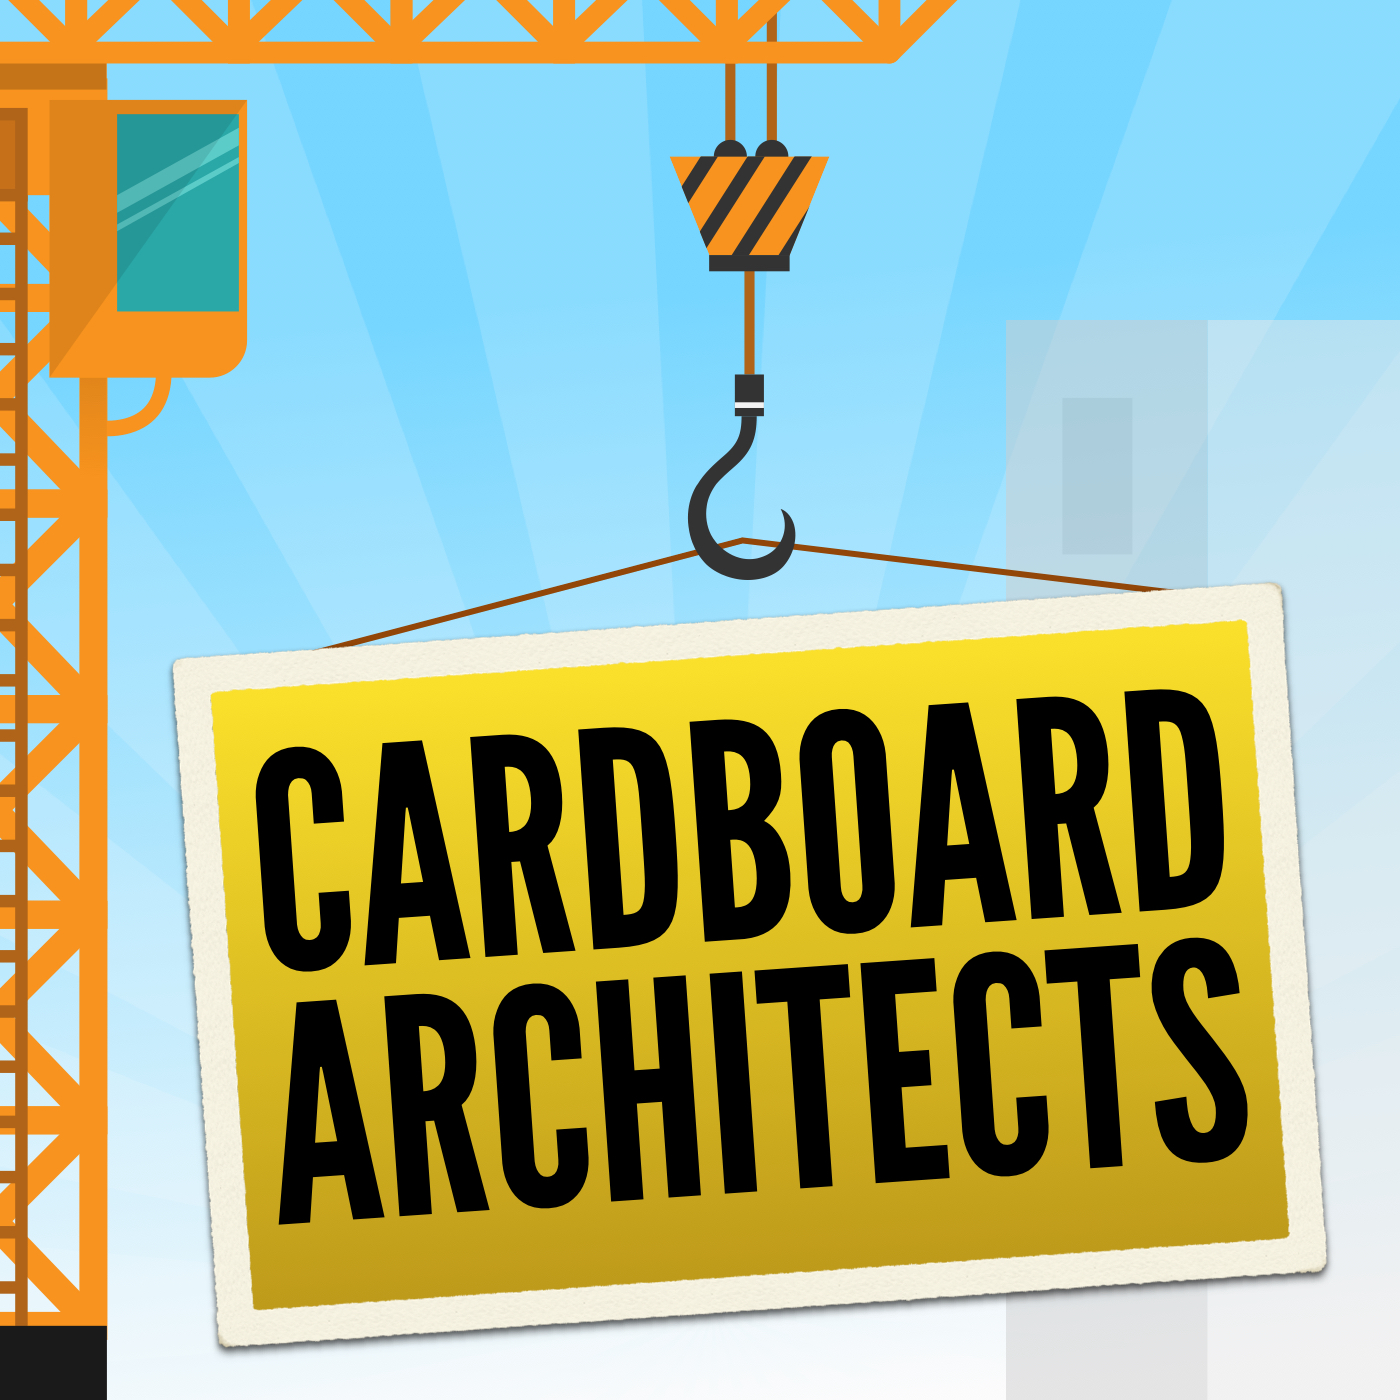 Cardboard Architects - PodcastRating: PG